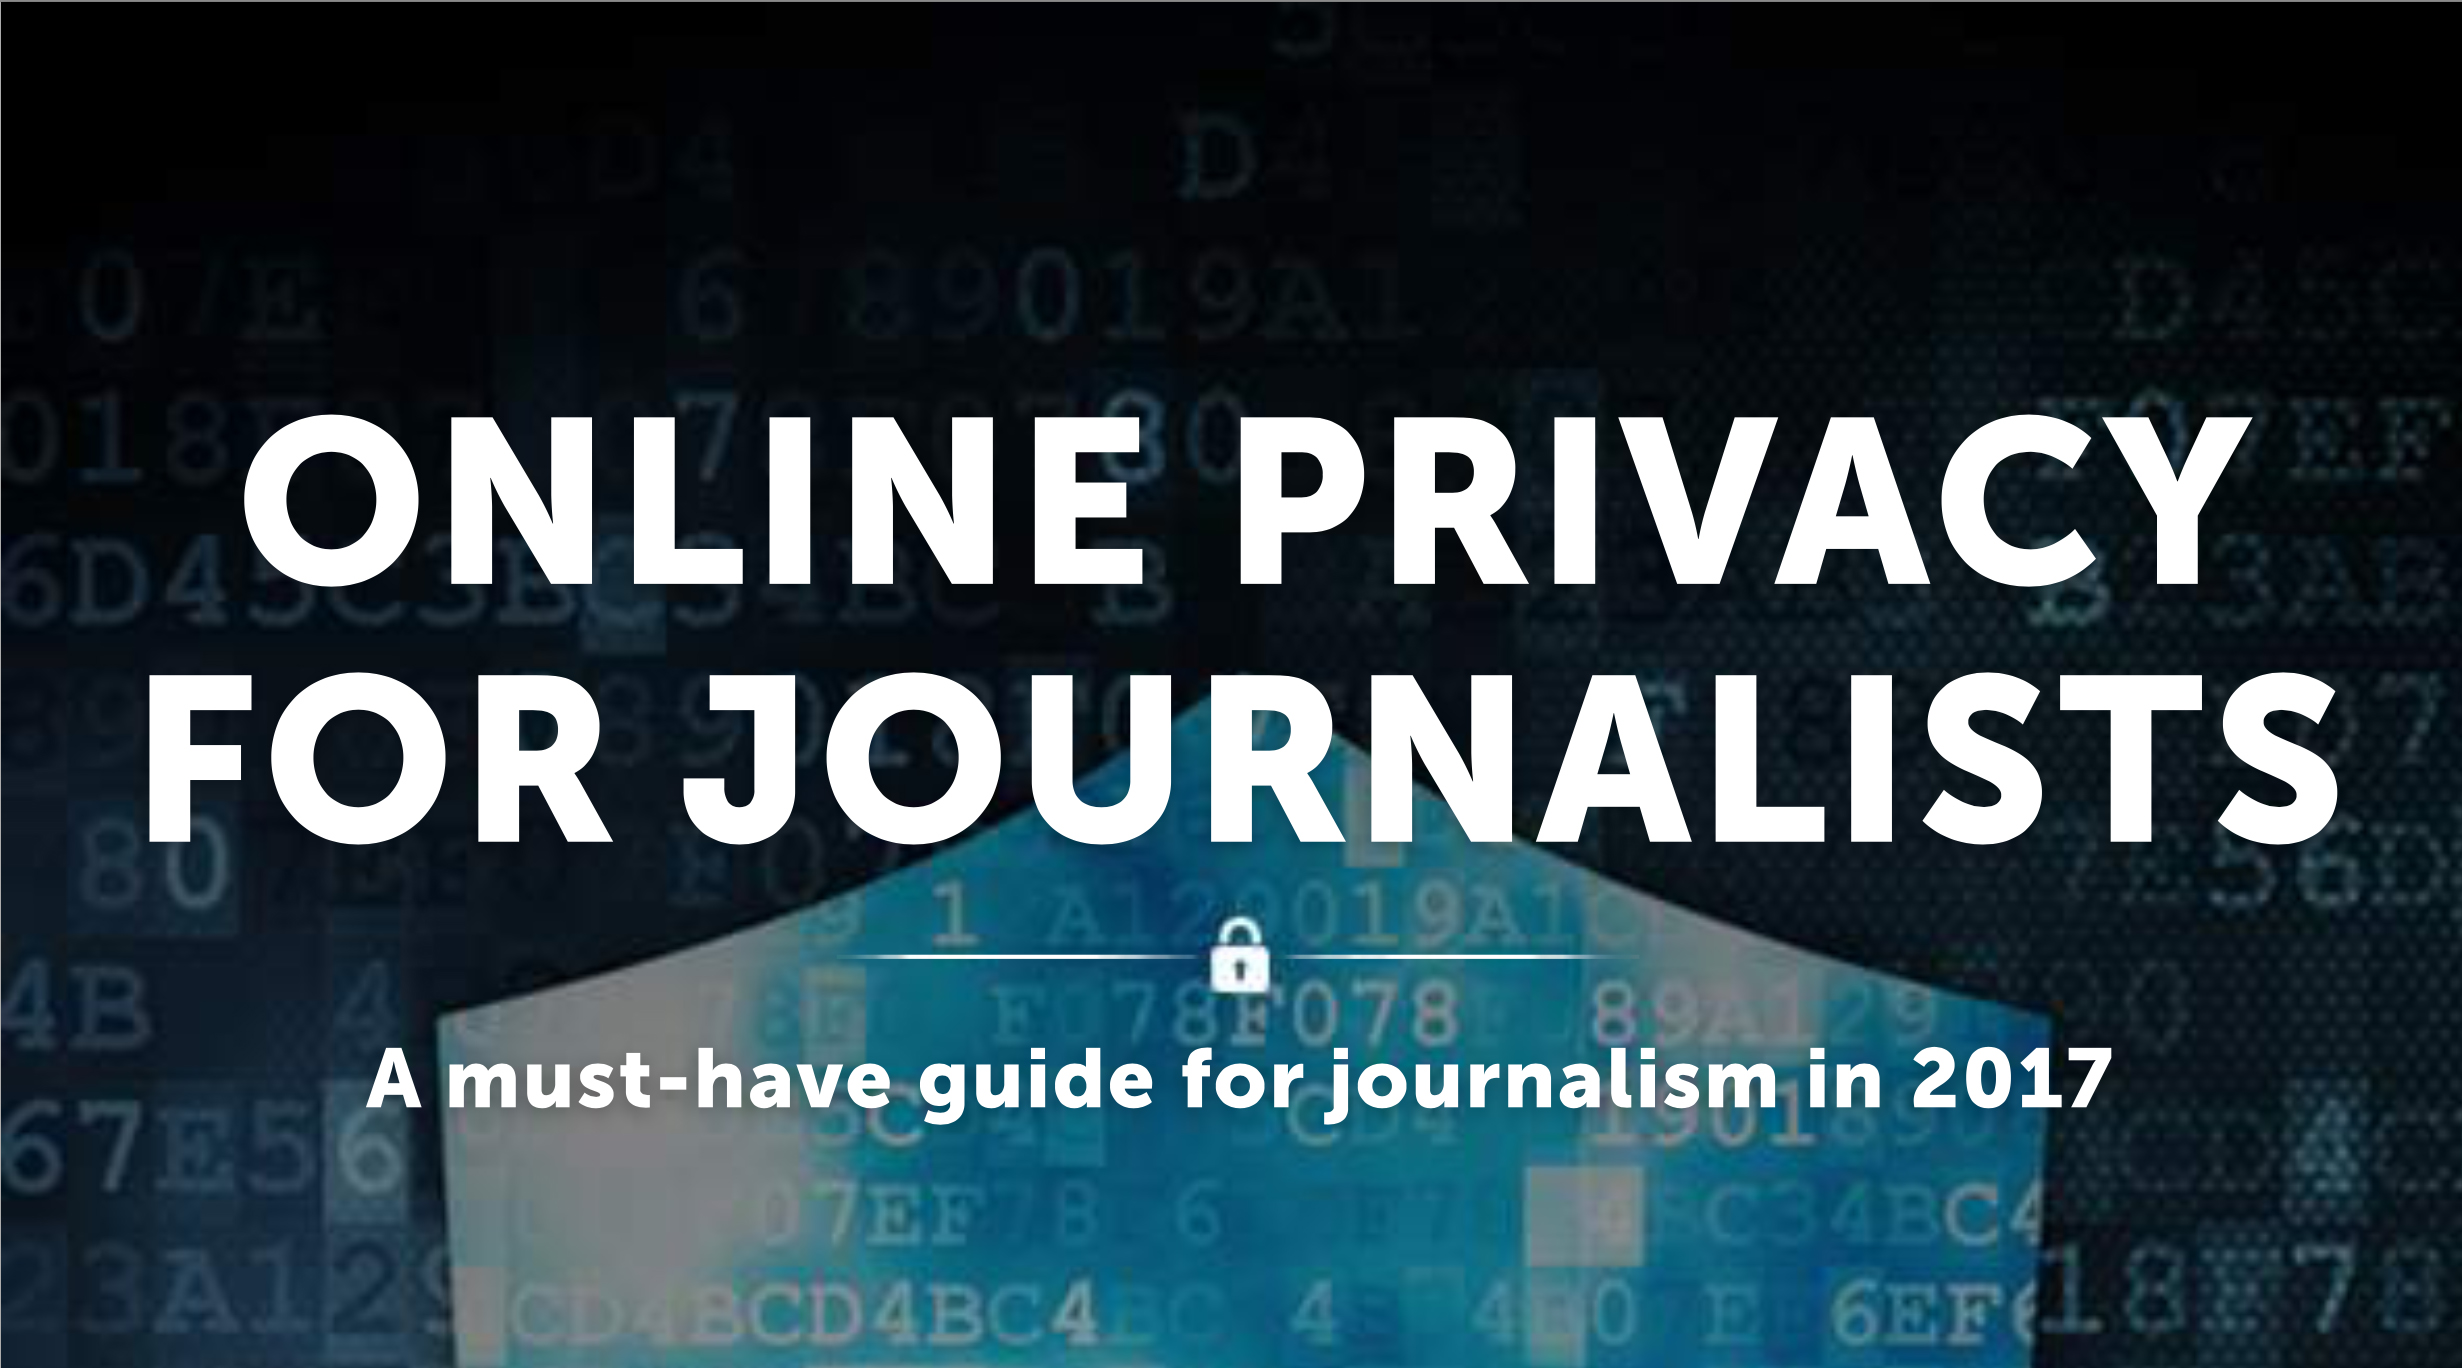 Journalists Who Want Online Privacy Need To Read This Guide | Occupy com